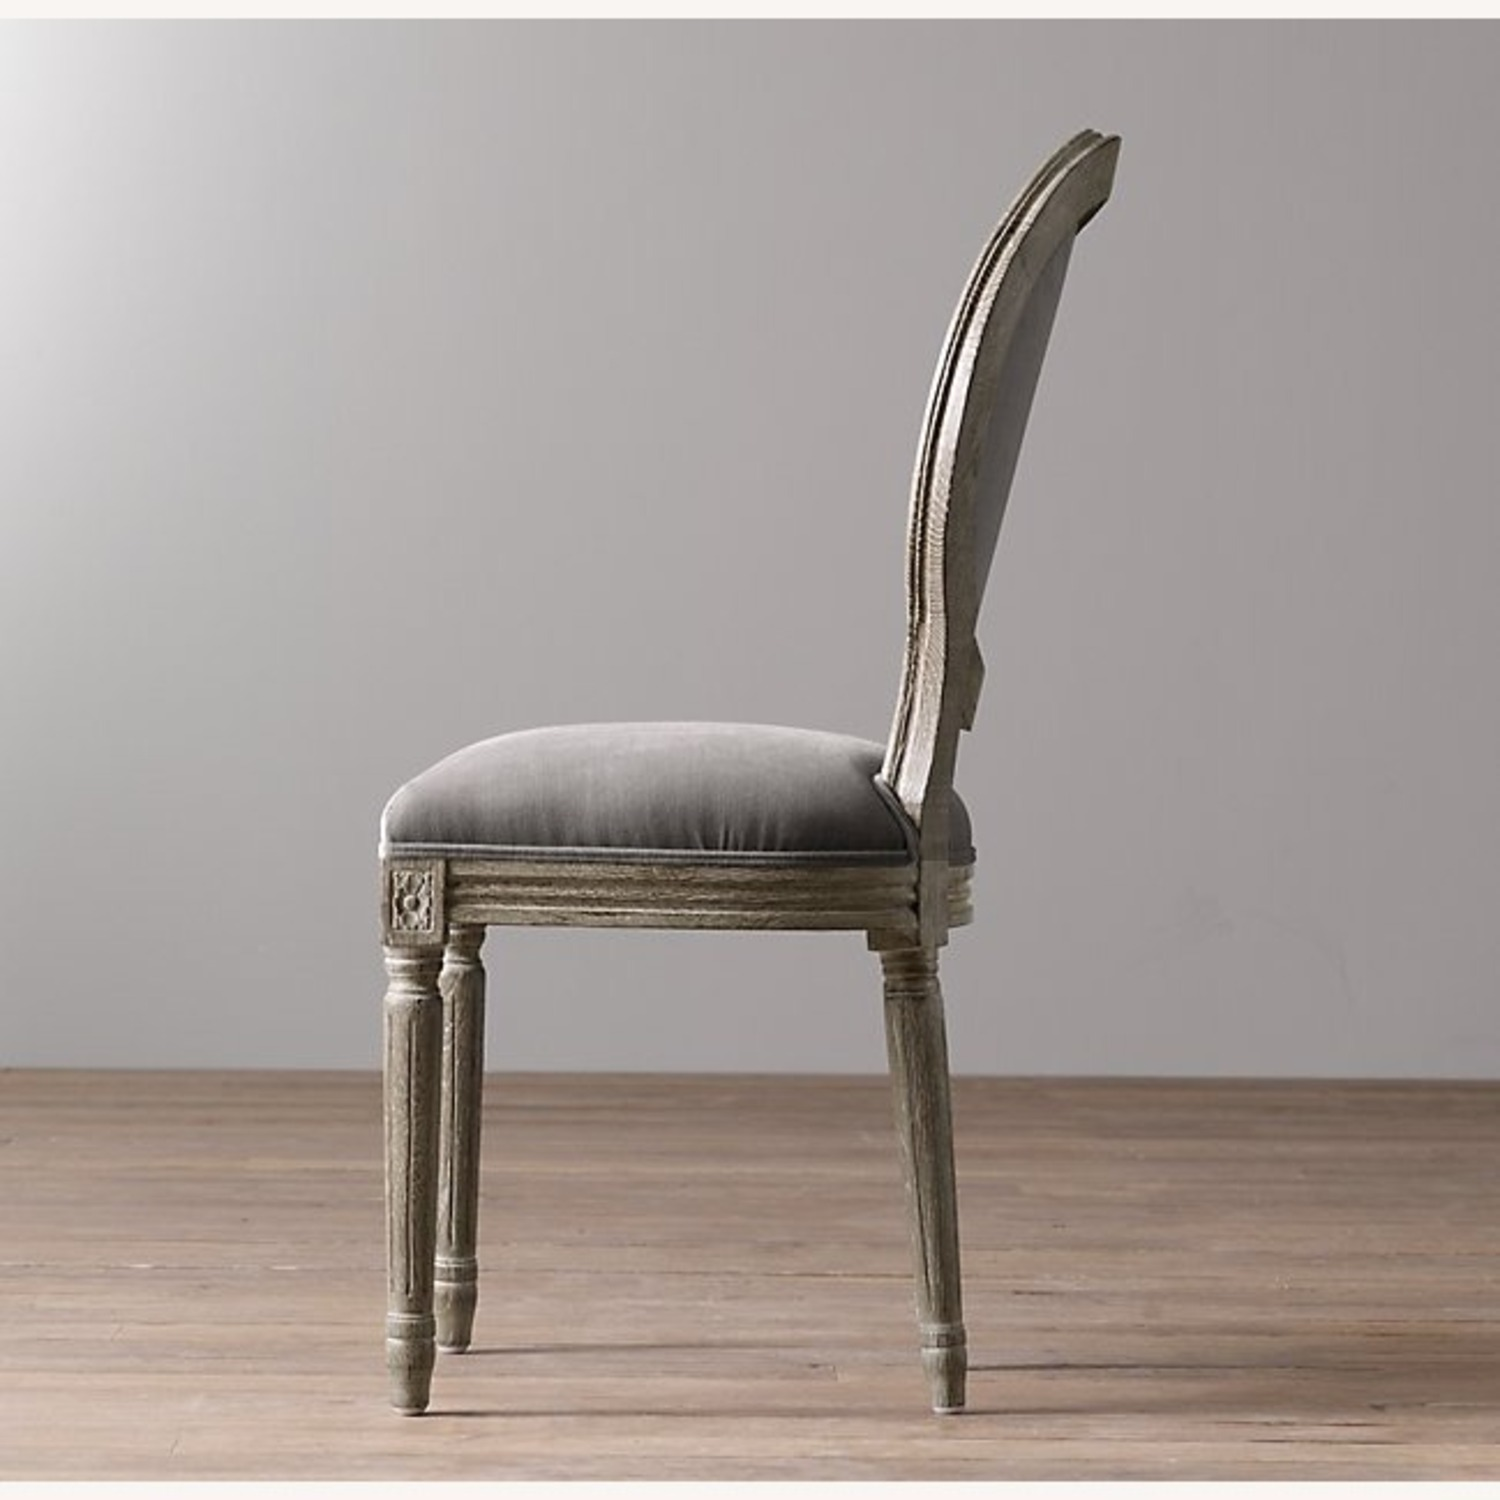 Restoration Hardware Mini Vintage French Upholstered Chair - image-6